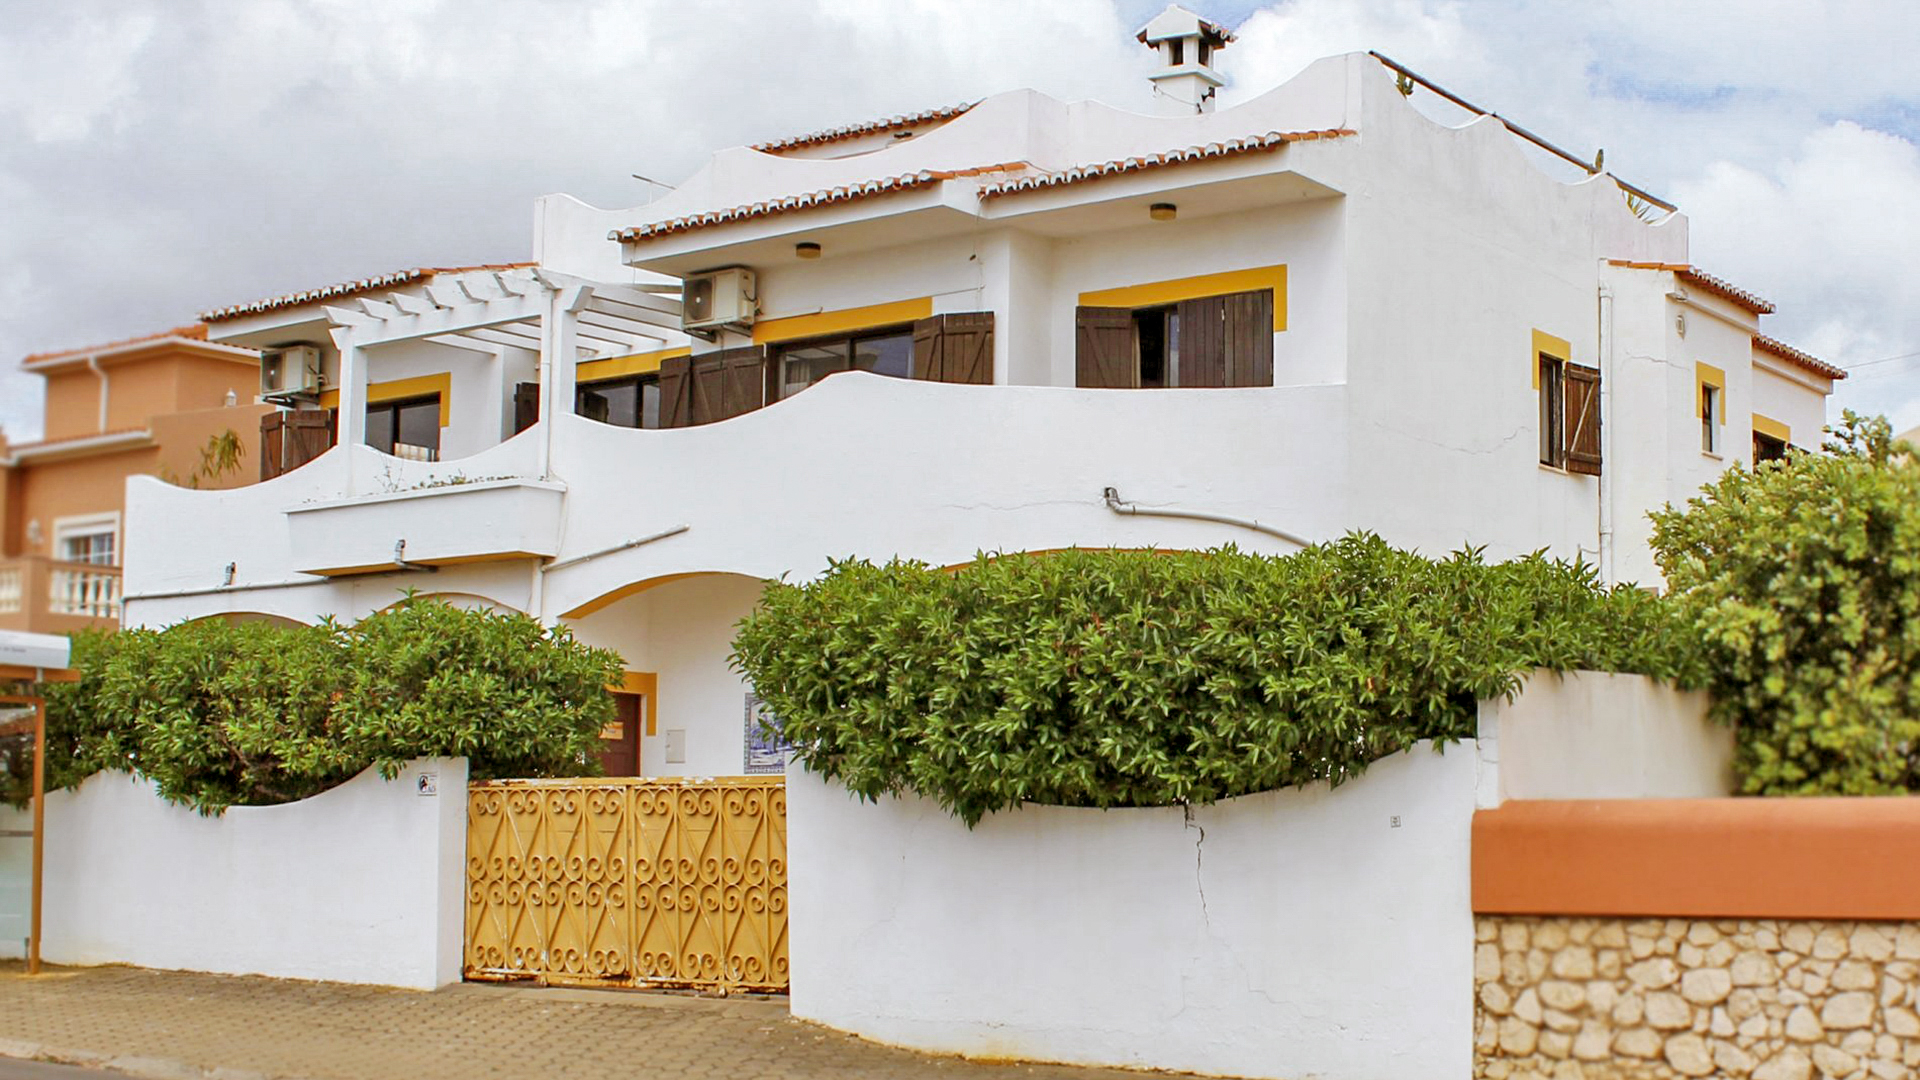 5+ bedroom villa-hostel with apartments, pool and roof terrace, Lagos, West Algarve | LG1239 This 2-storey detached property with roof terrace and private pool is in the historic town of Lagos. Close to fabulous beaches, a golf course, the award-winning marina and a huge selection of restaurants, cafes and bars. Currently a surf hostel, it comprises of a 3-bedroom main house plus converted ground floor accommodation providing 3 separate apartments. This fabulous investment opportunity makes great commercial sense as either a large family home, guesthouse or a combination of the two.